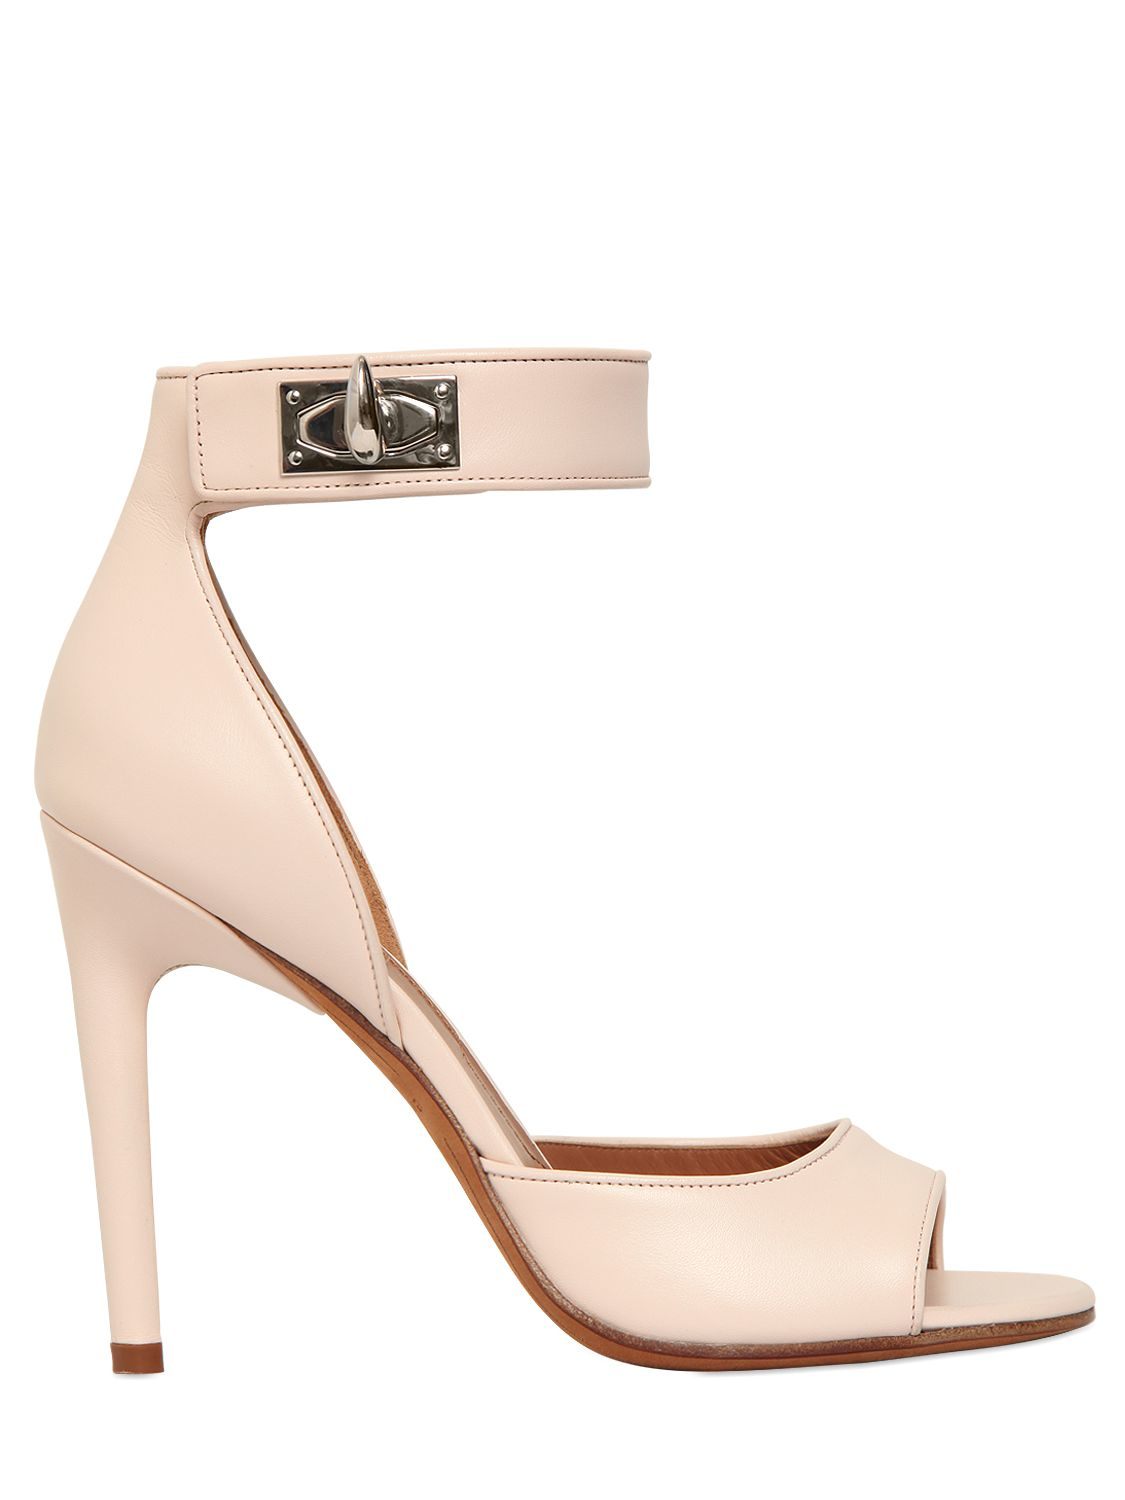 39fe5de4a94 Lyst - Givenchy 105mm Clara Shark Lock Leather Sandals in Pink